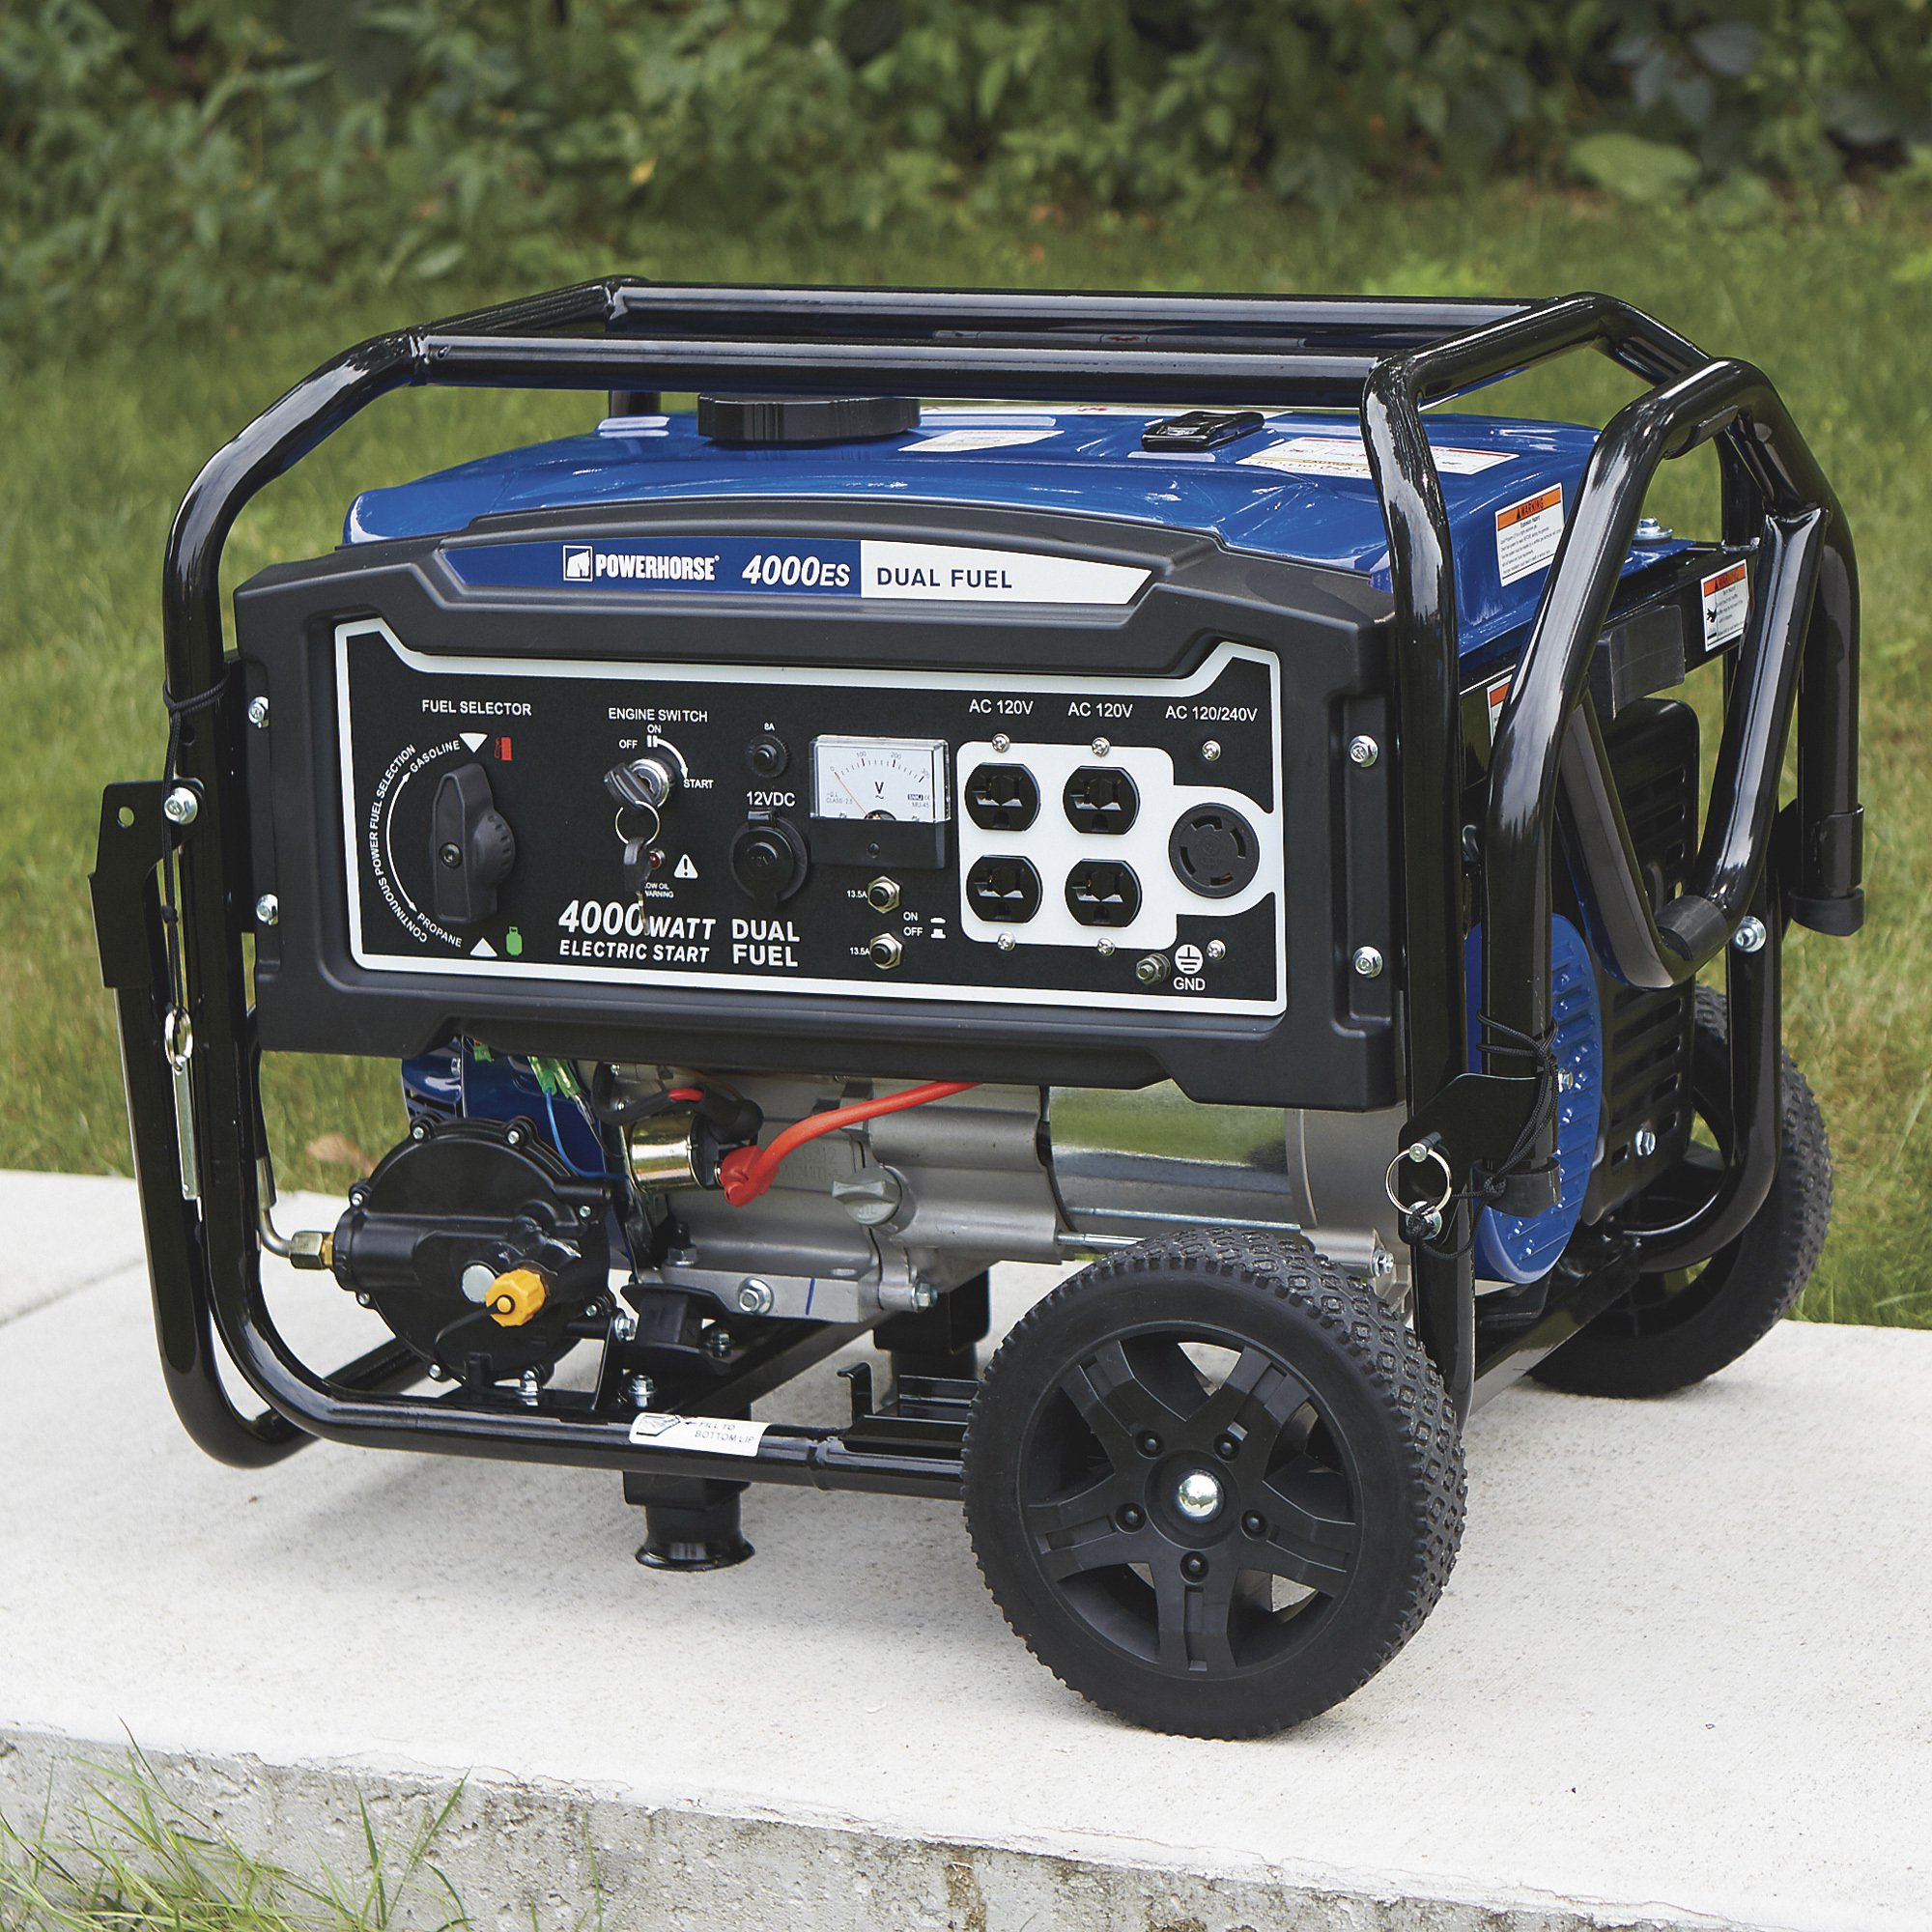 Powerhorse 750134 Dual Fuel Generator with Electric Start - 4,000 Surge Watts, 3,100 Rated Watts